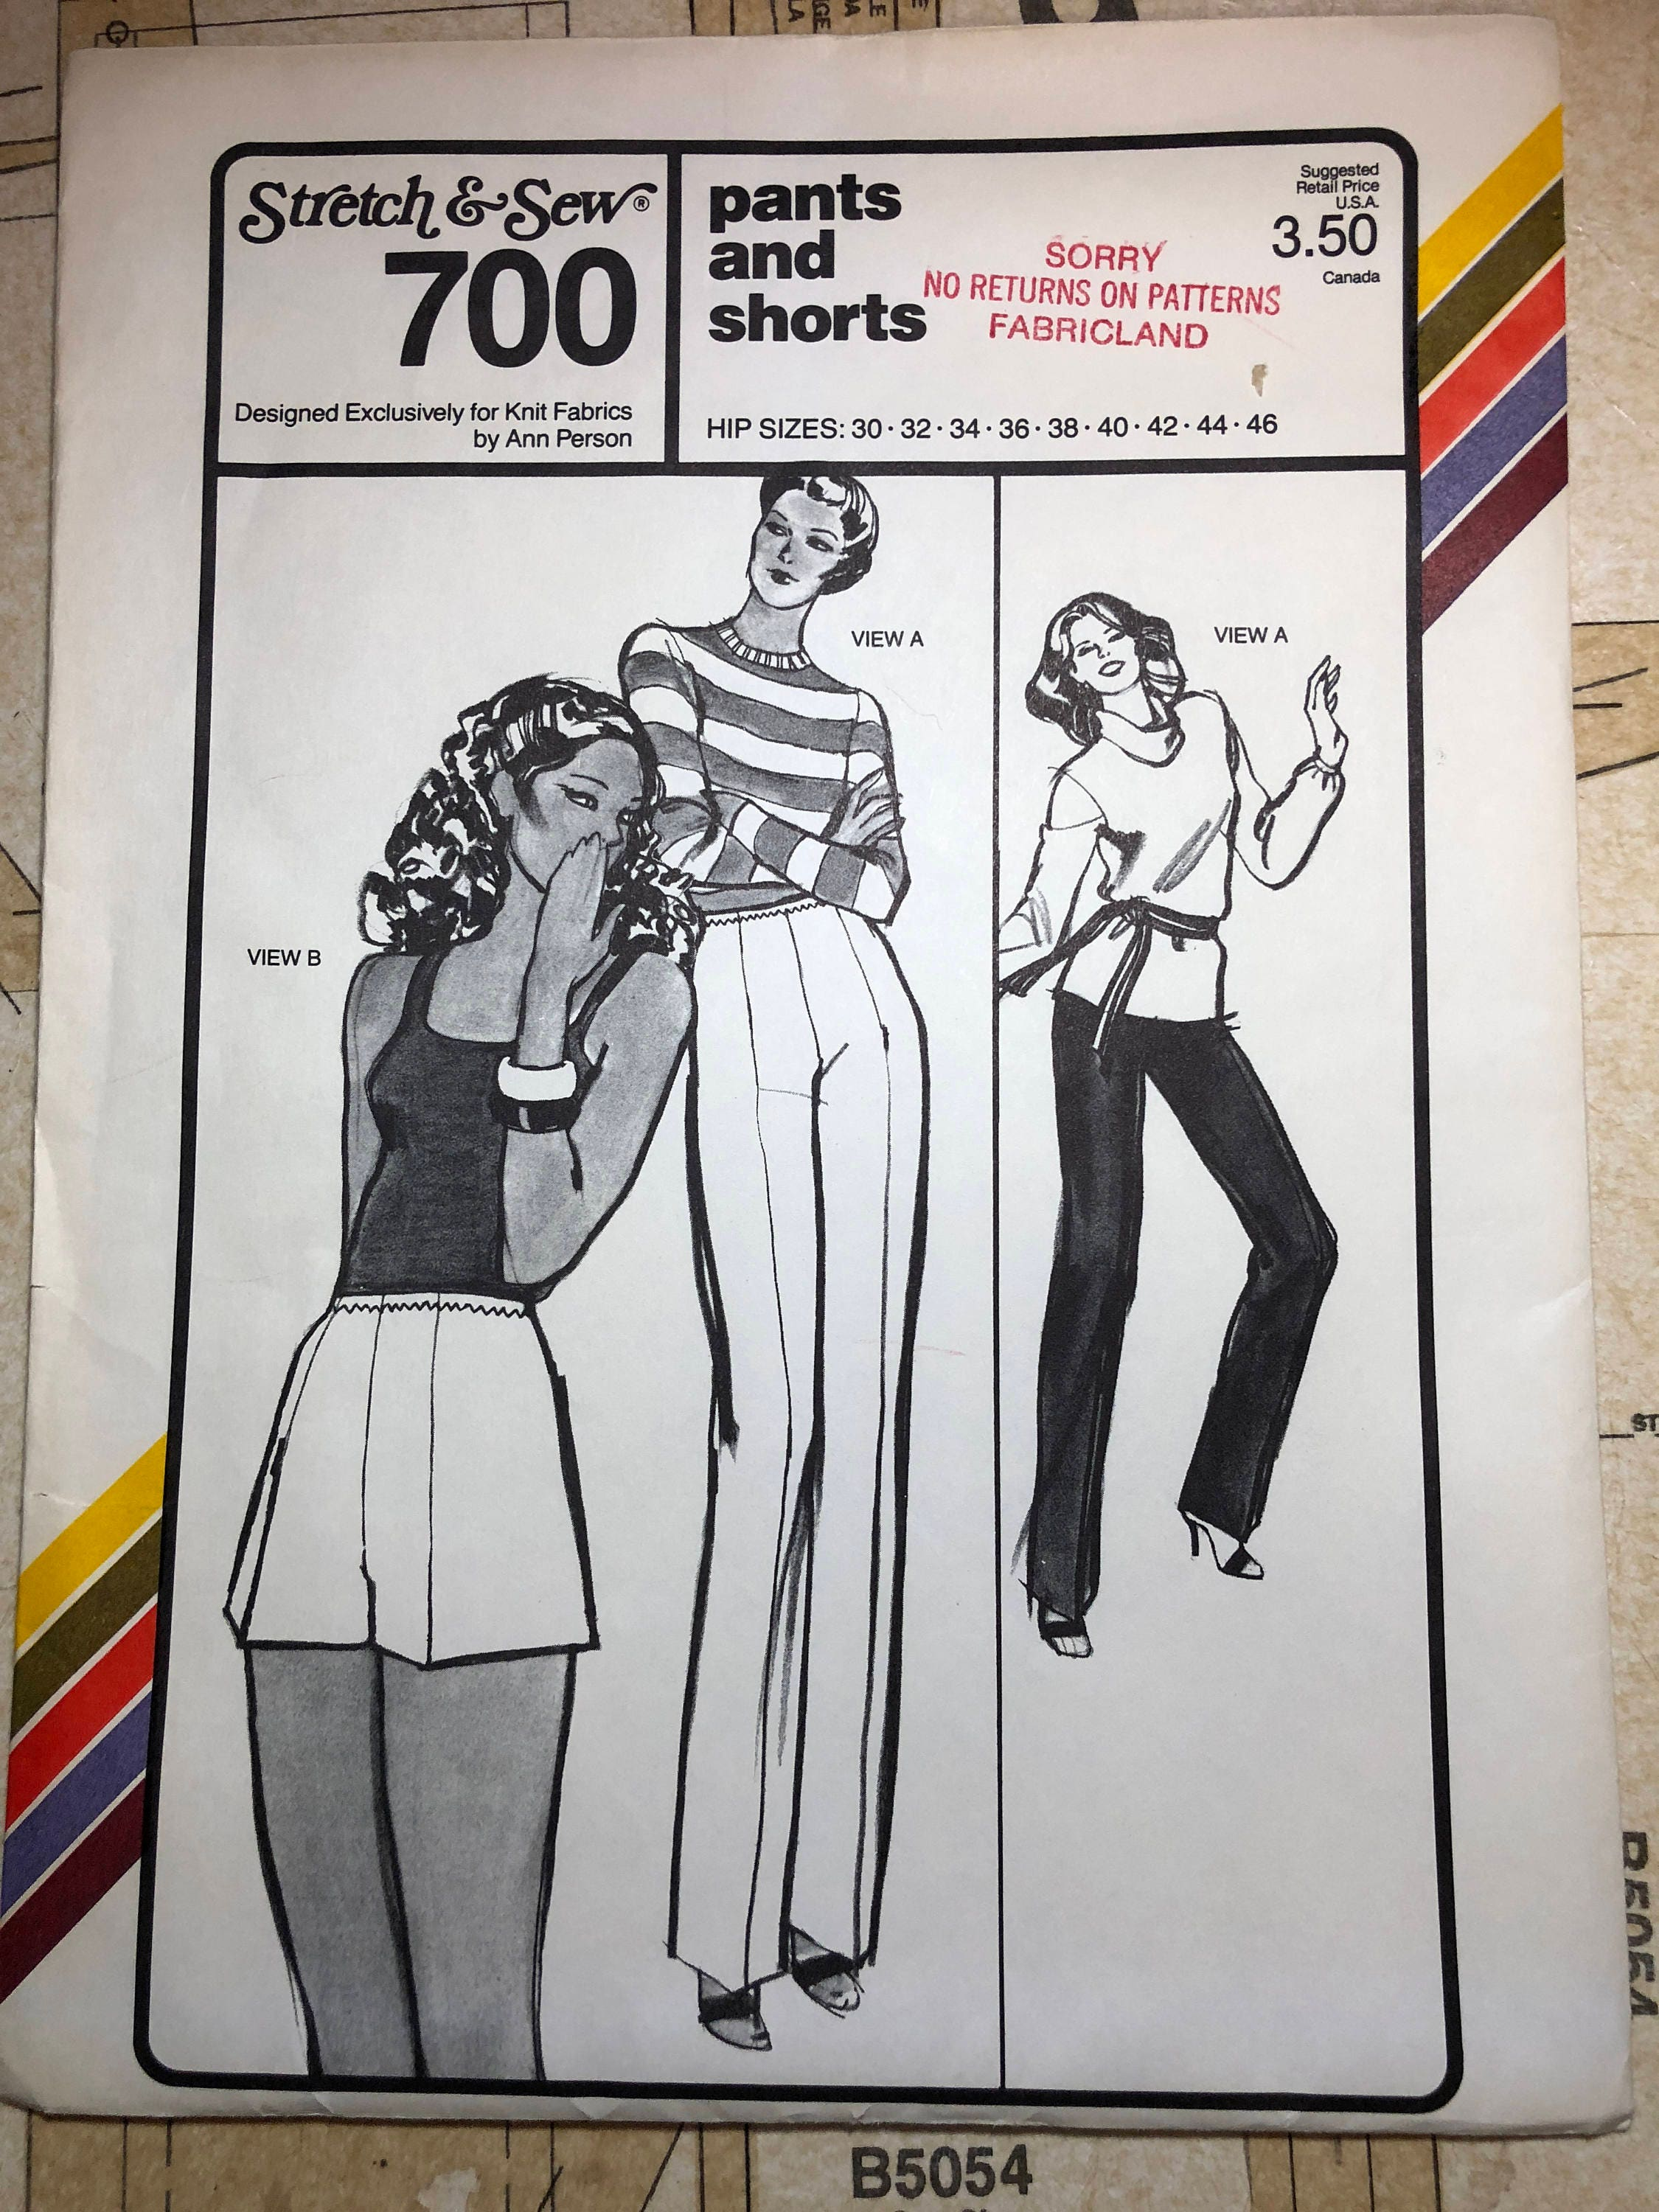 UNCUT Pants and Shorts Sewing Pattern Stretch and Sew 700